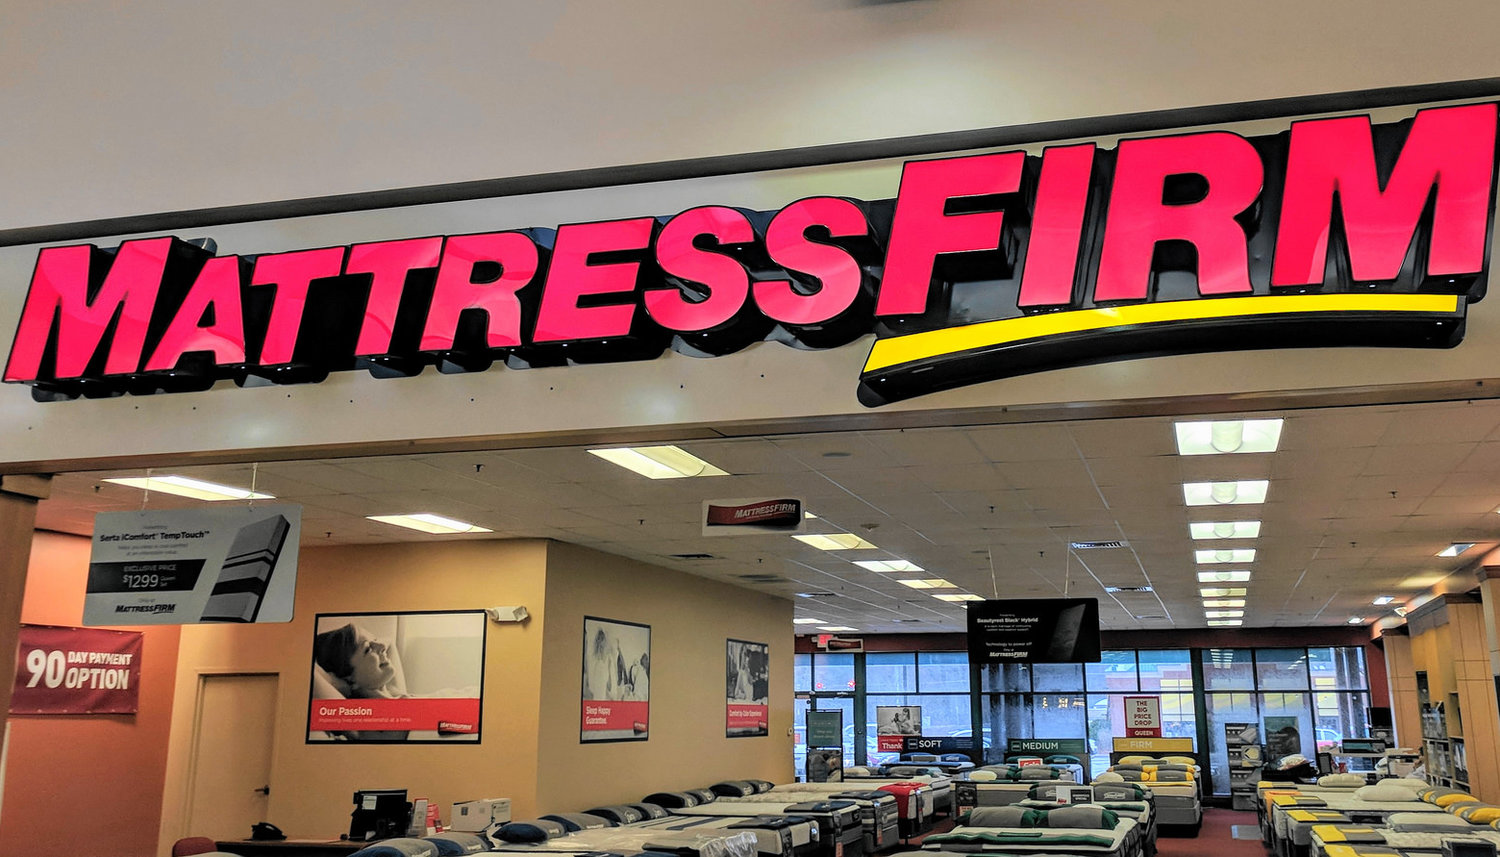 Mattress Firm announced plans to close as many as 700 stores nationwide, including locations in Cedar Park and Round Rock, following its Chapter 11 bankruptcy filing.